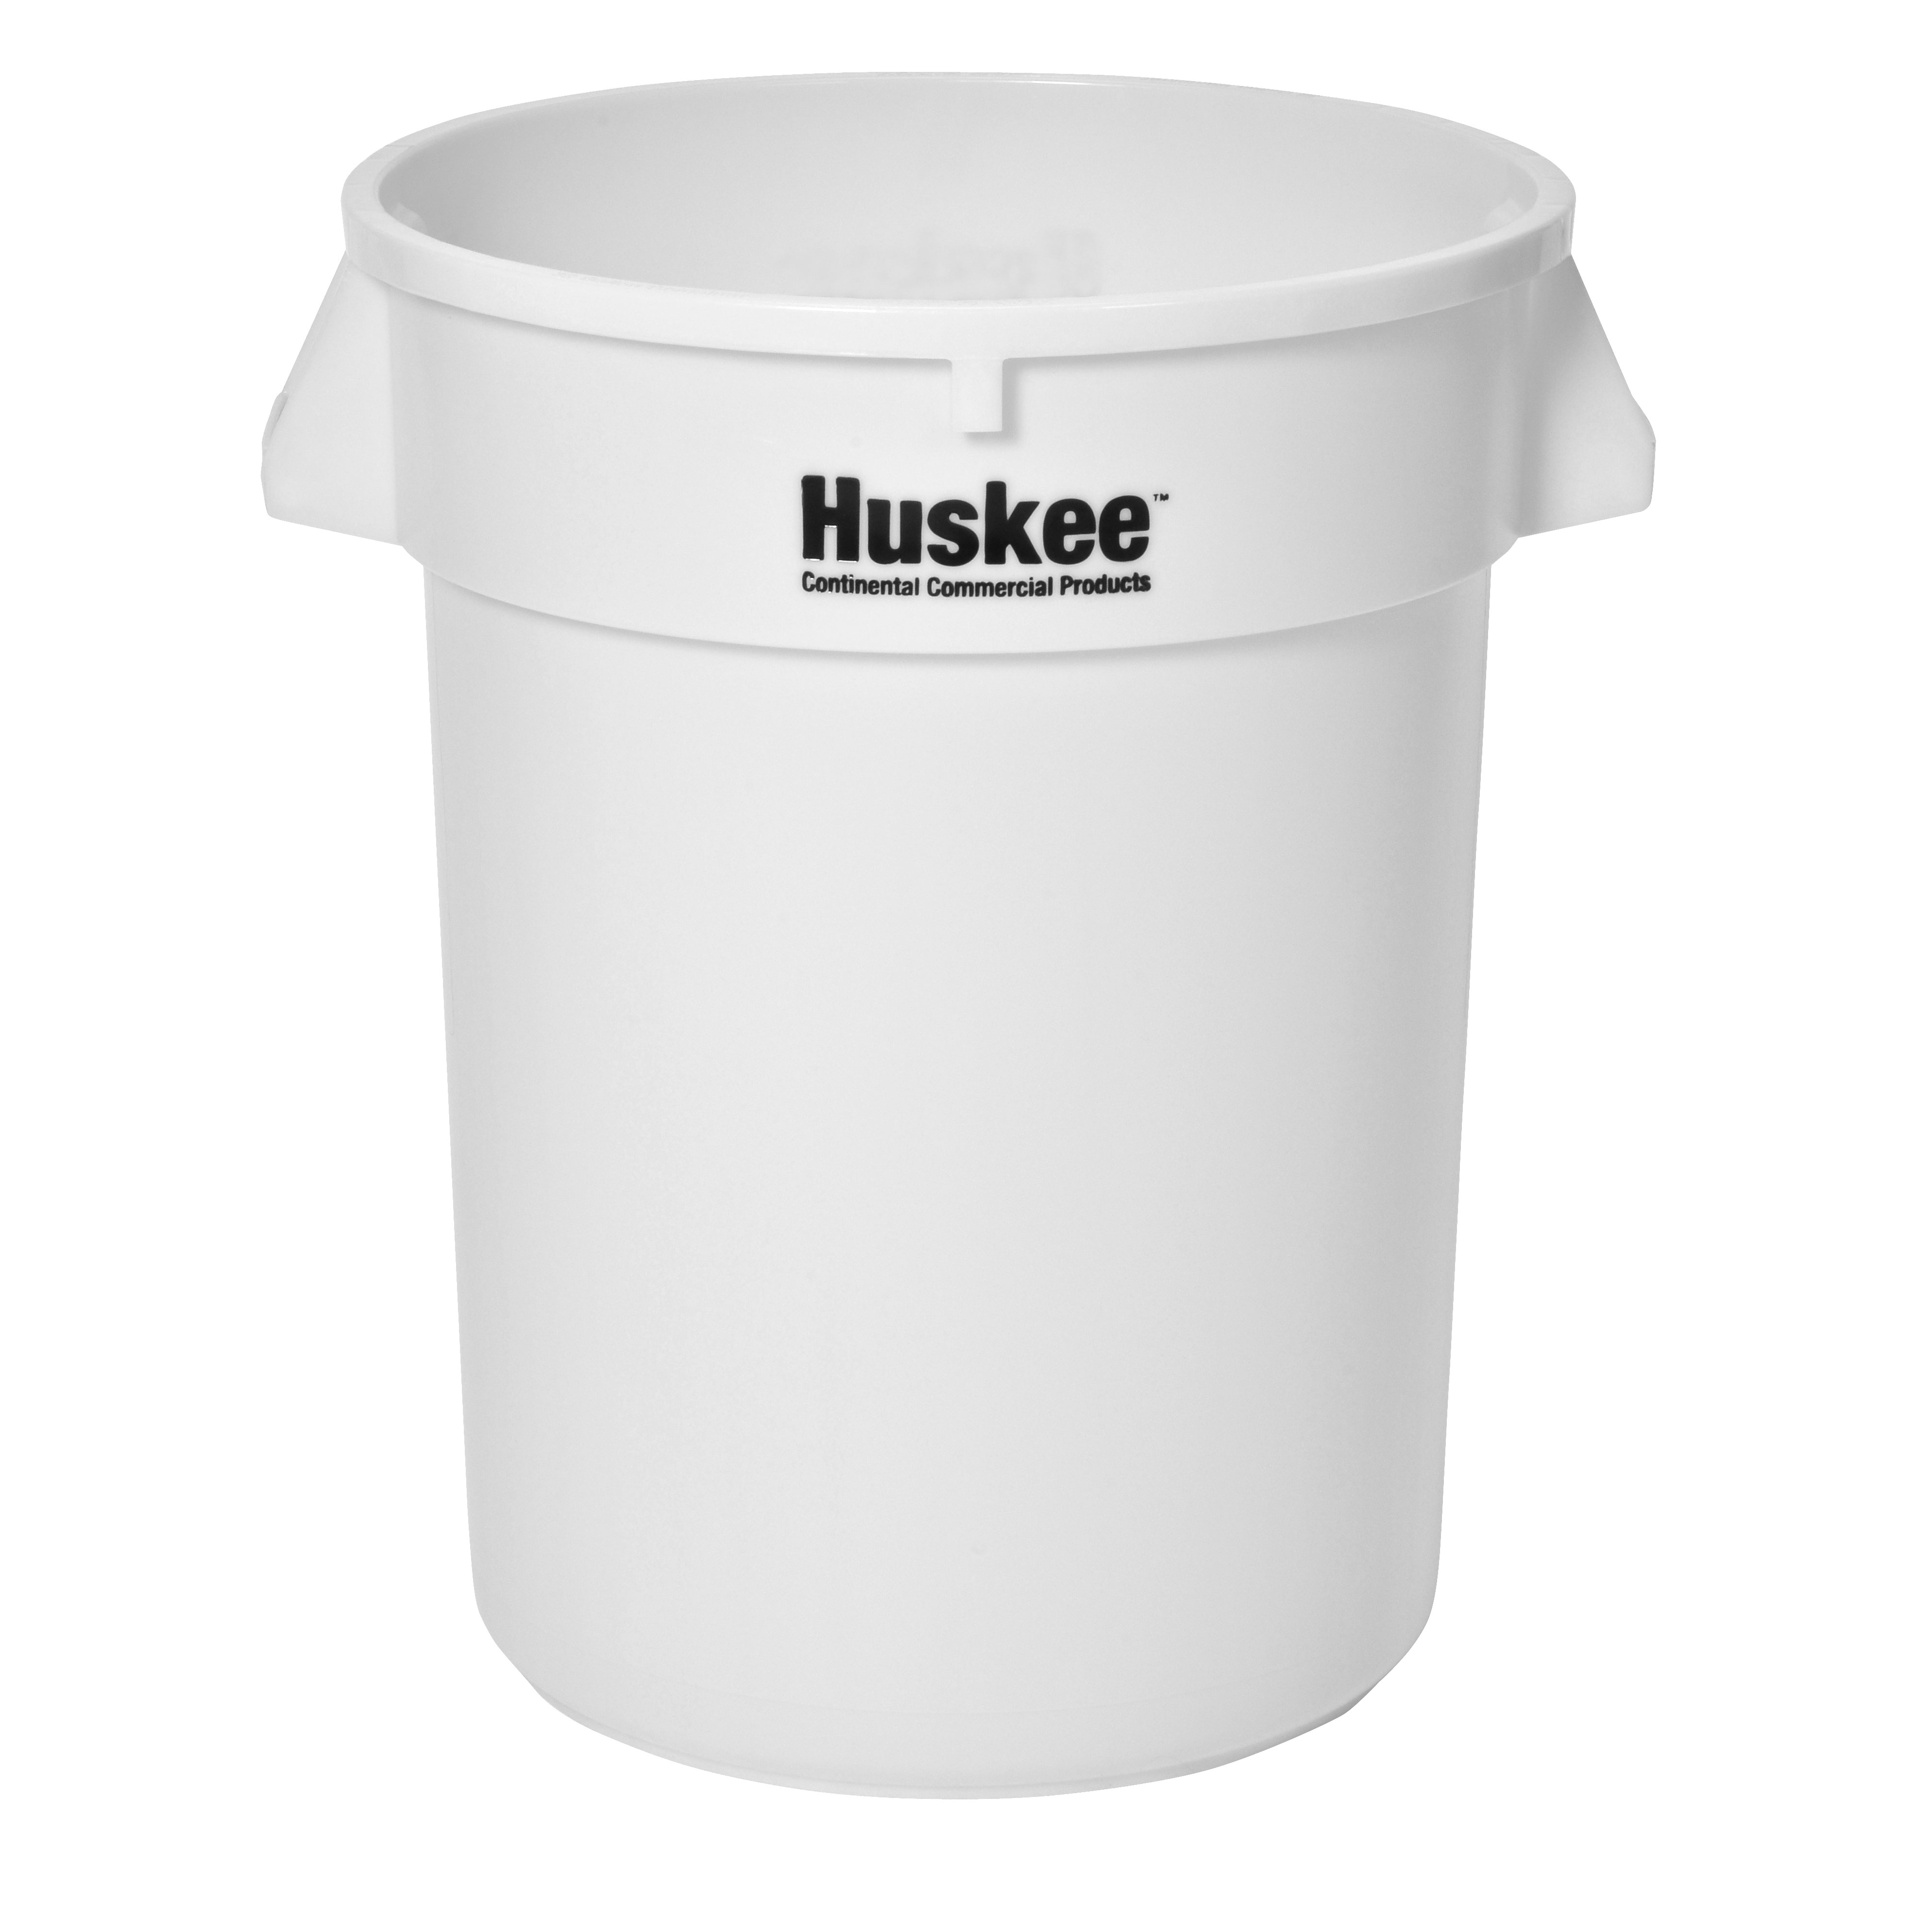 Royal Industries CCP 3200WH trash can / container, commercial